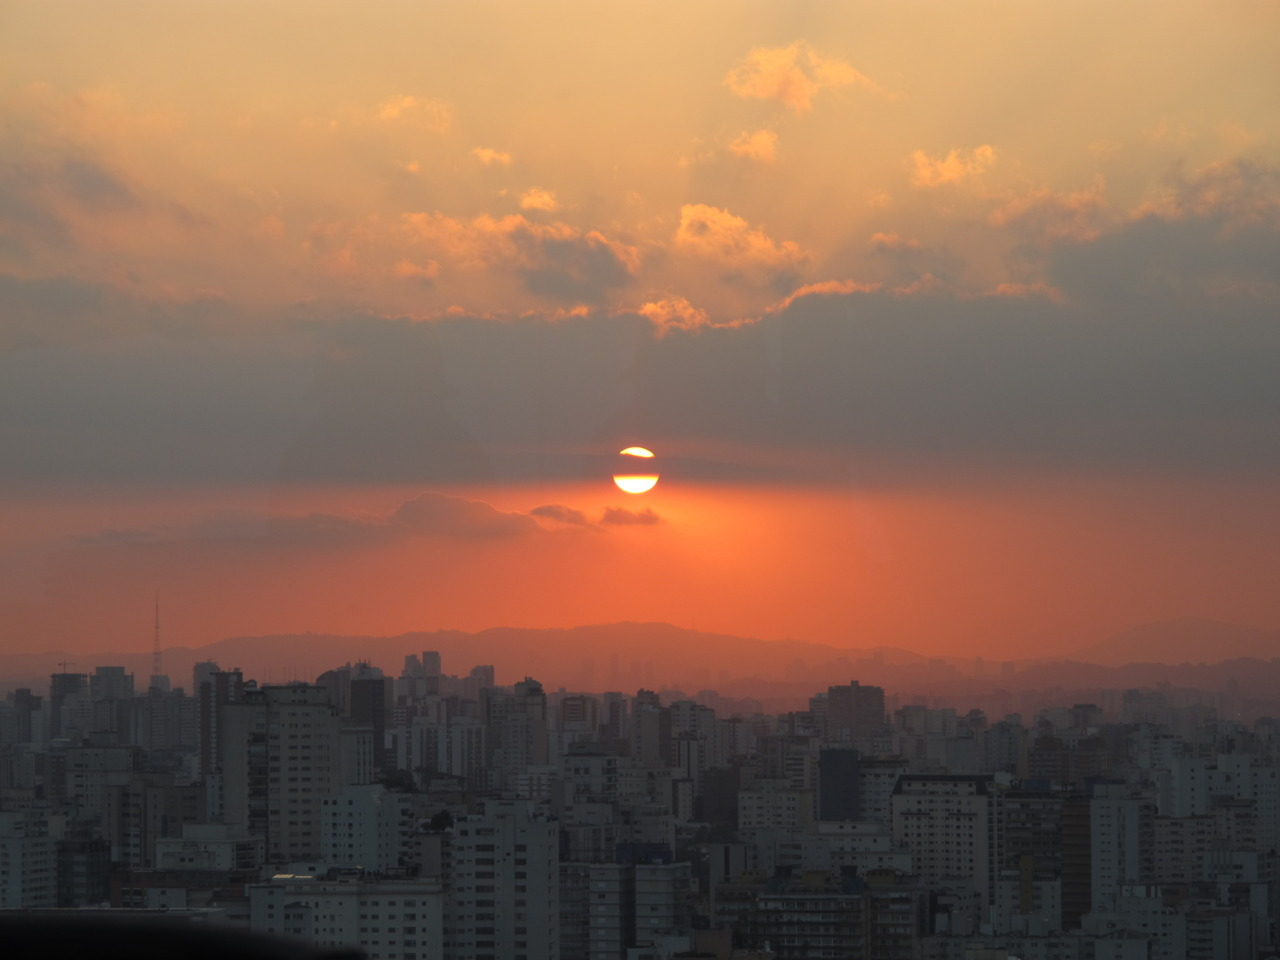 Sao Paulo by sunset. This place goes on forever on all sides, can't stop won't stop.